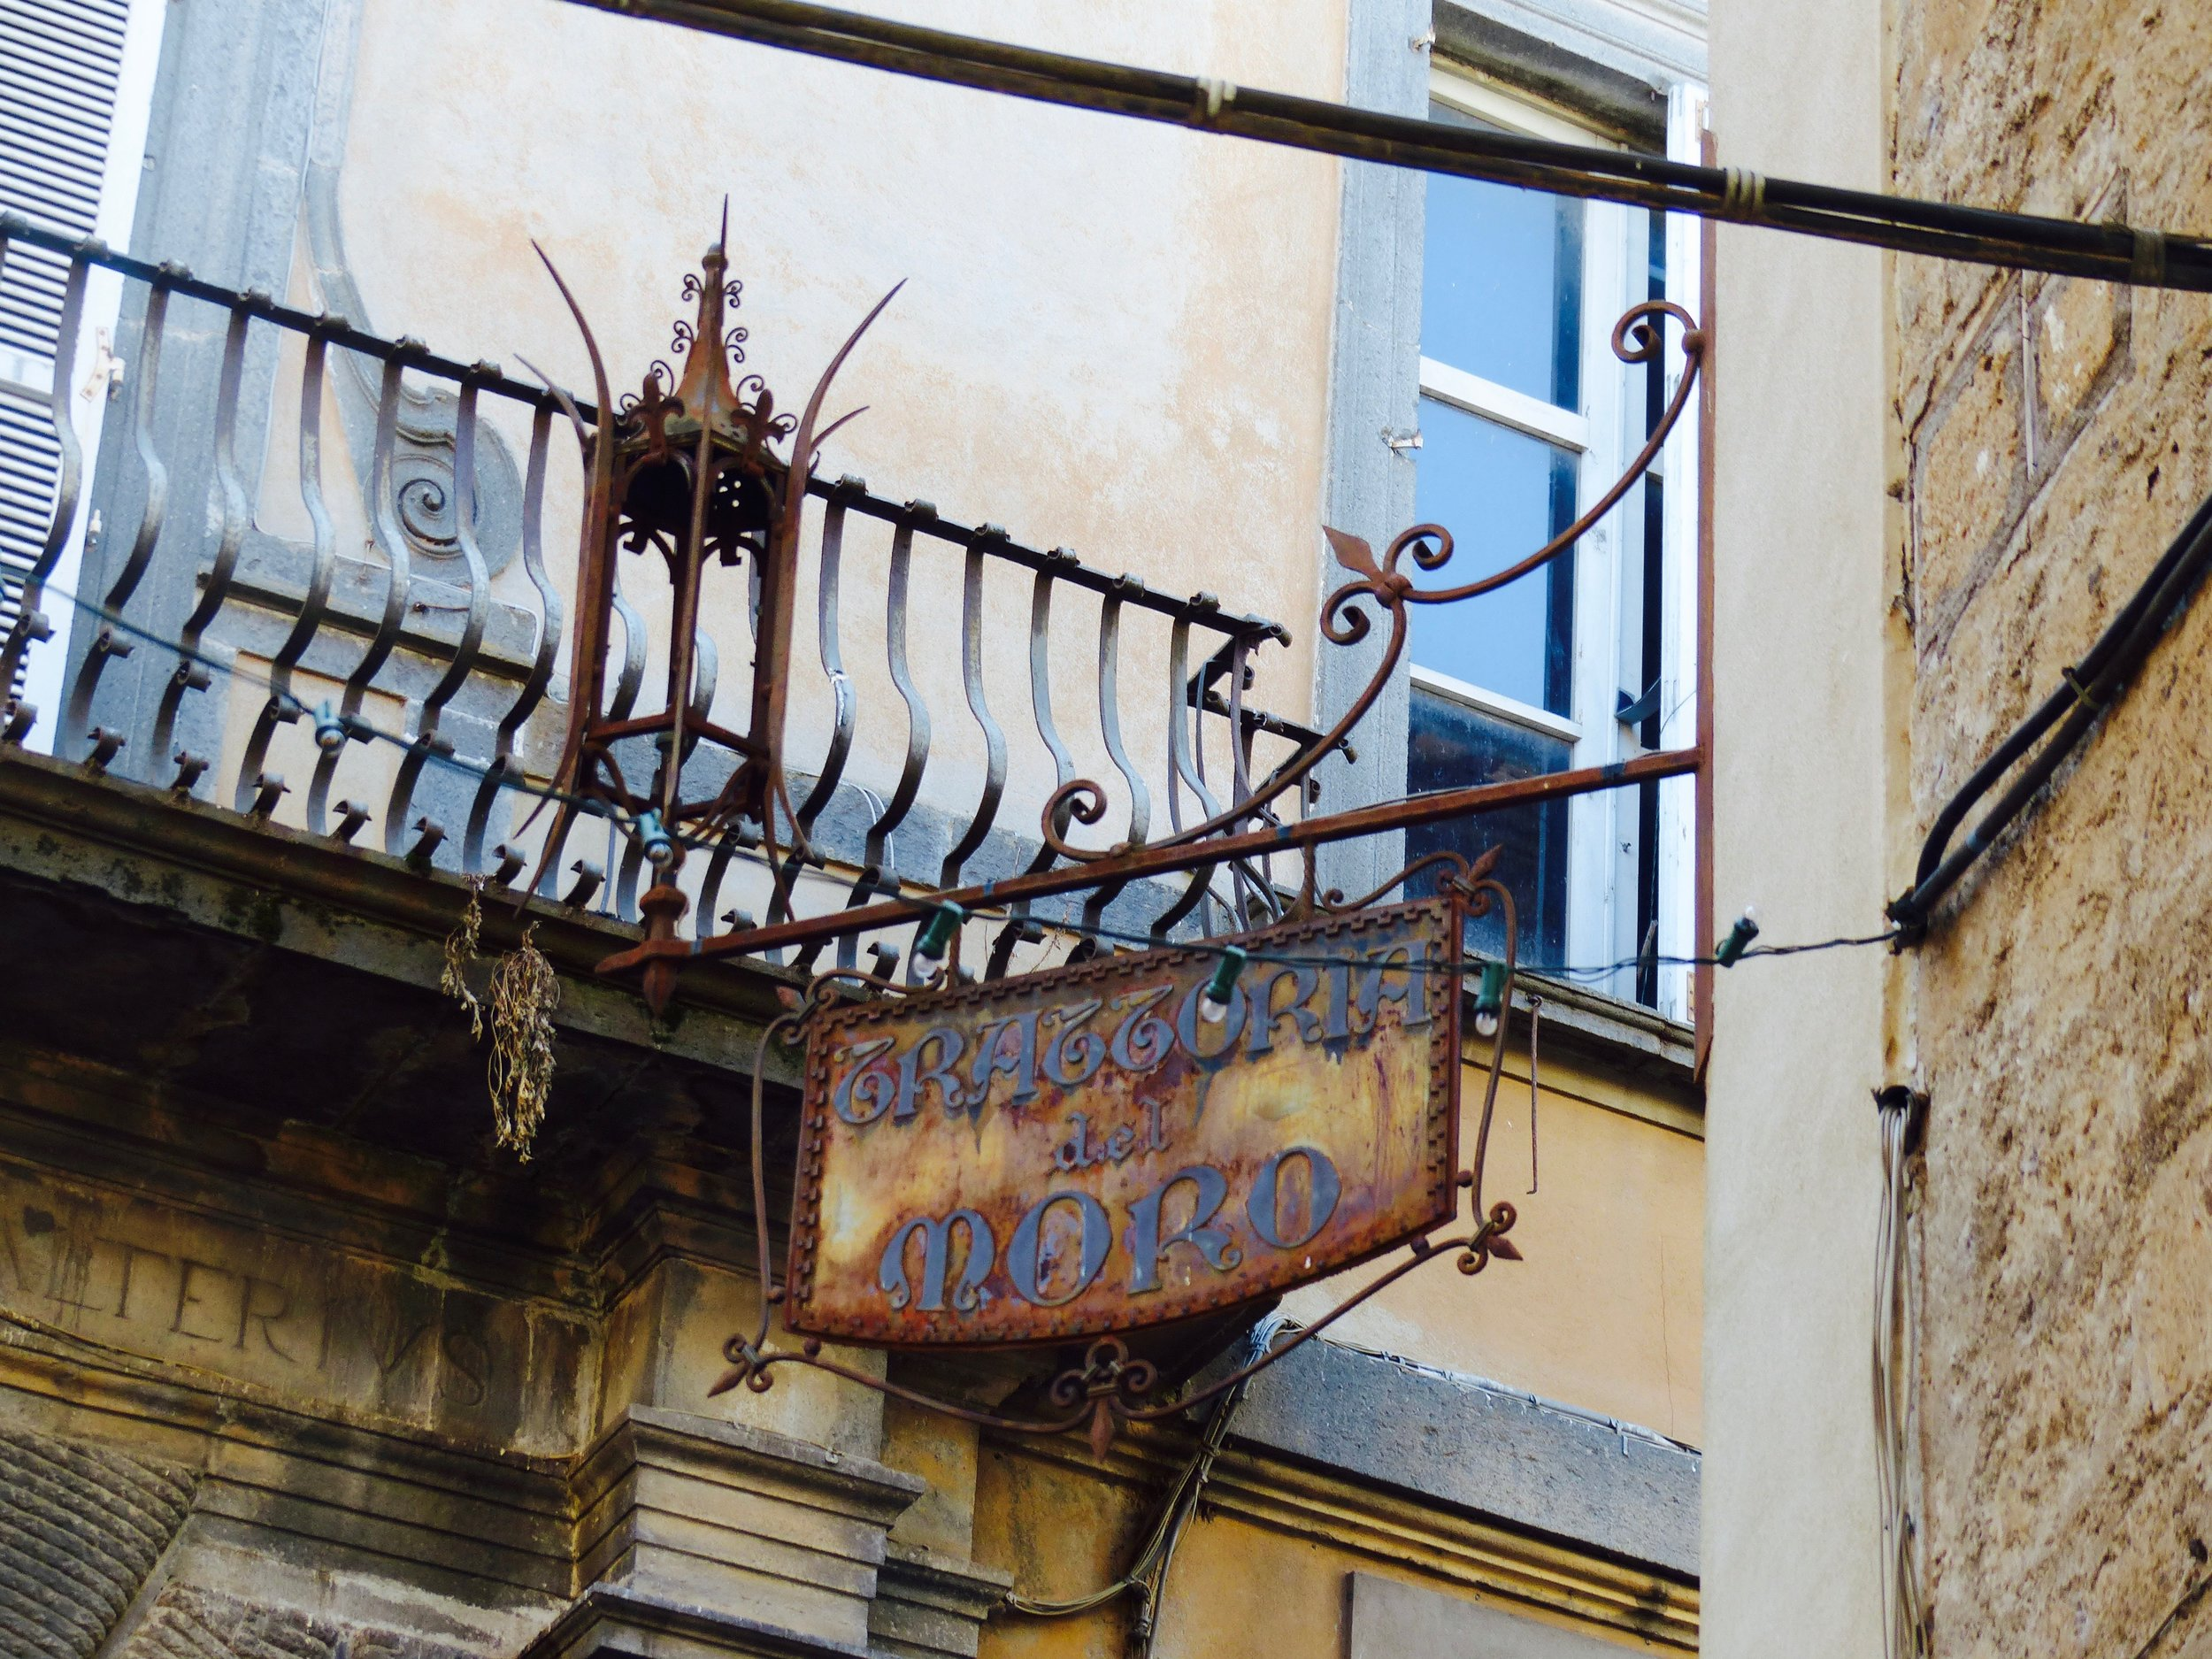 Sign for Trattoria del moro in Orvieto, Umbria